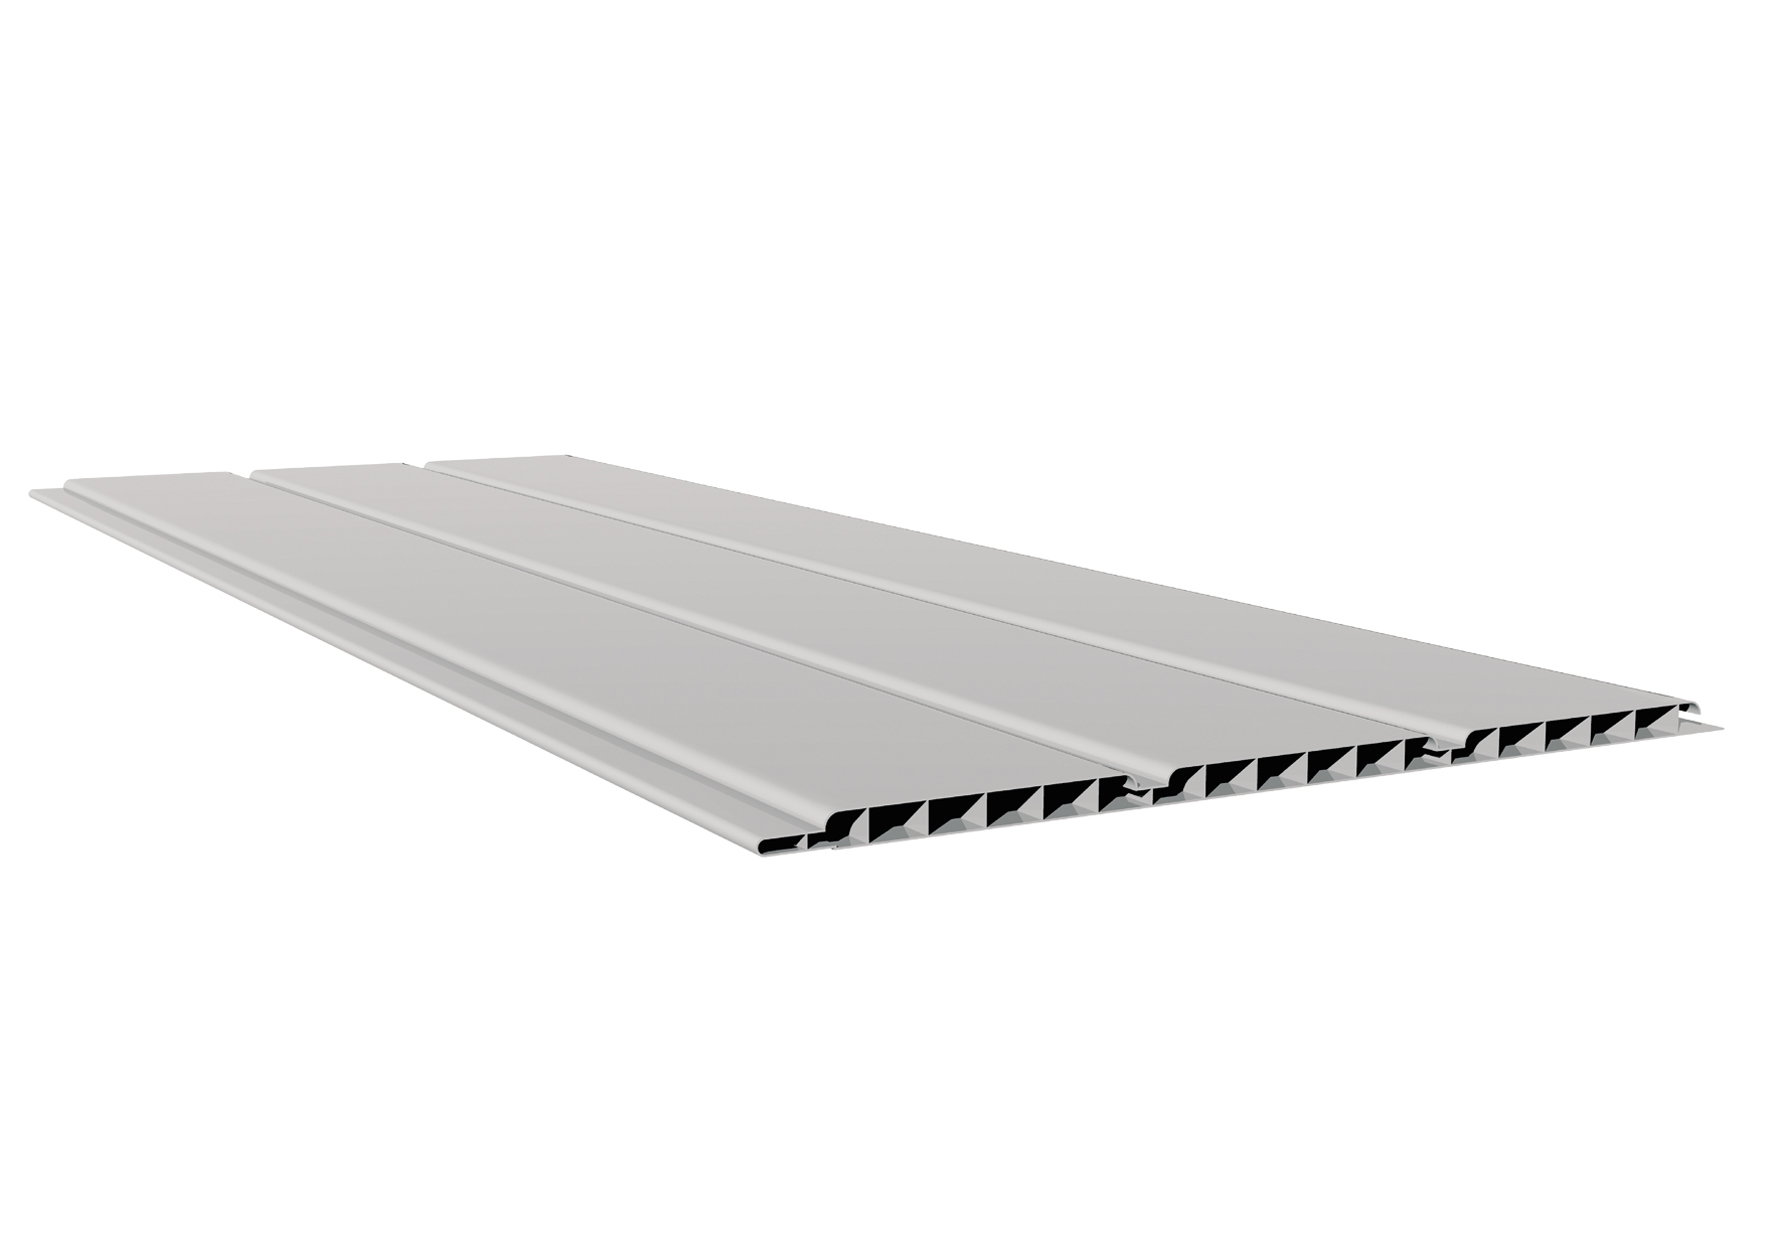 Lambris Blanc Castorama 10mm Rigid Hollow Soffit Board - Chelmsford Plastic Warehouse